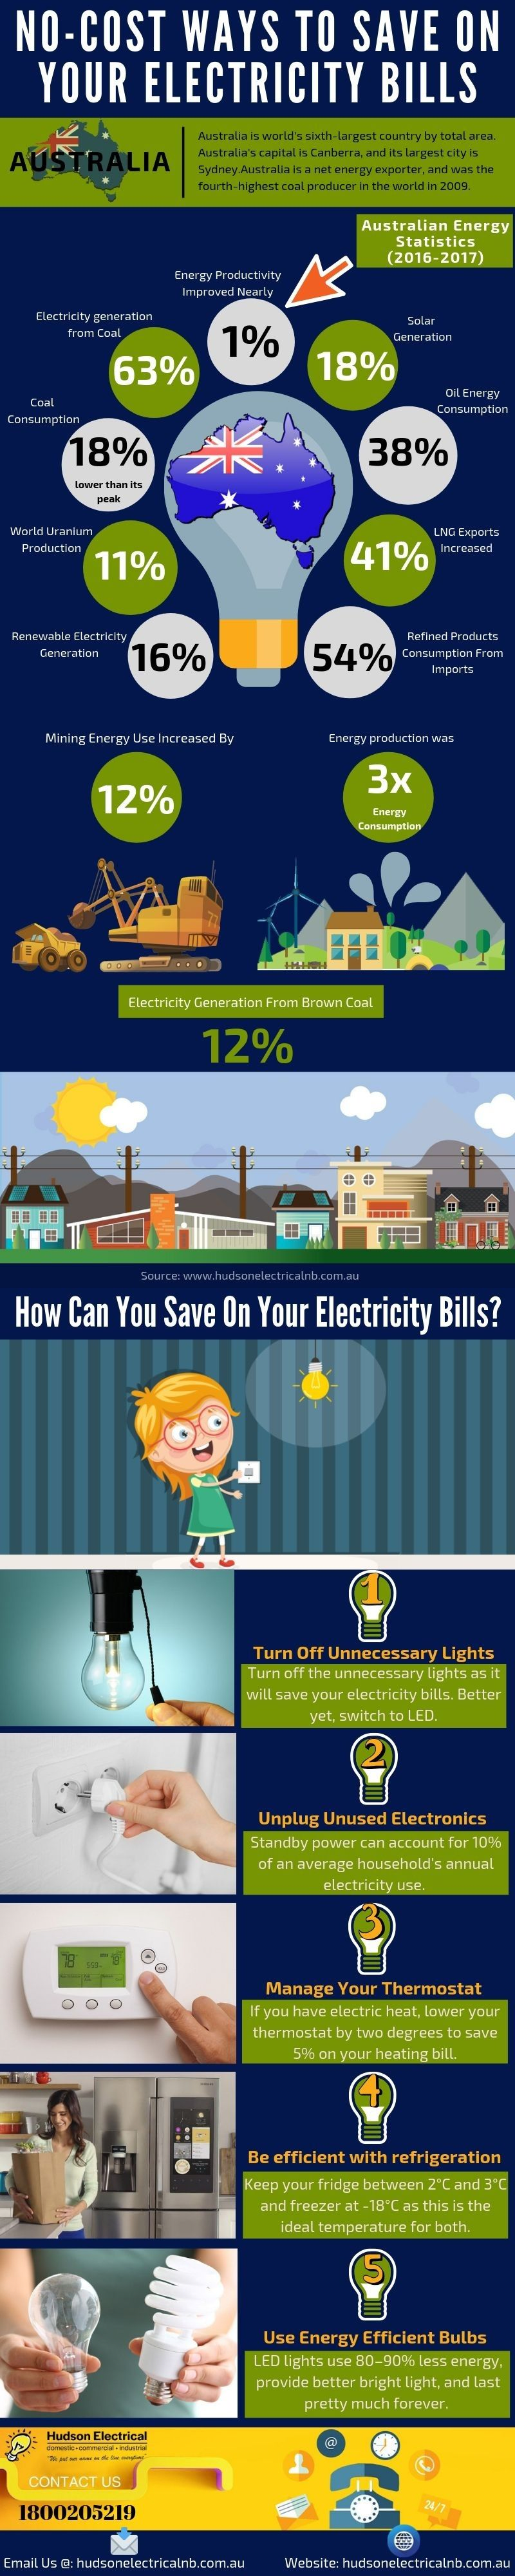 No Cost Ways To Save On Your Electricity Bills